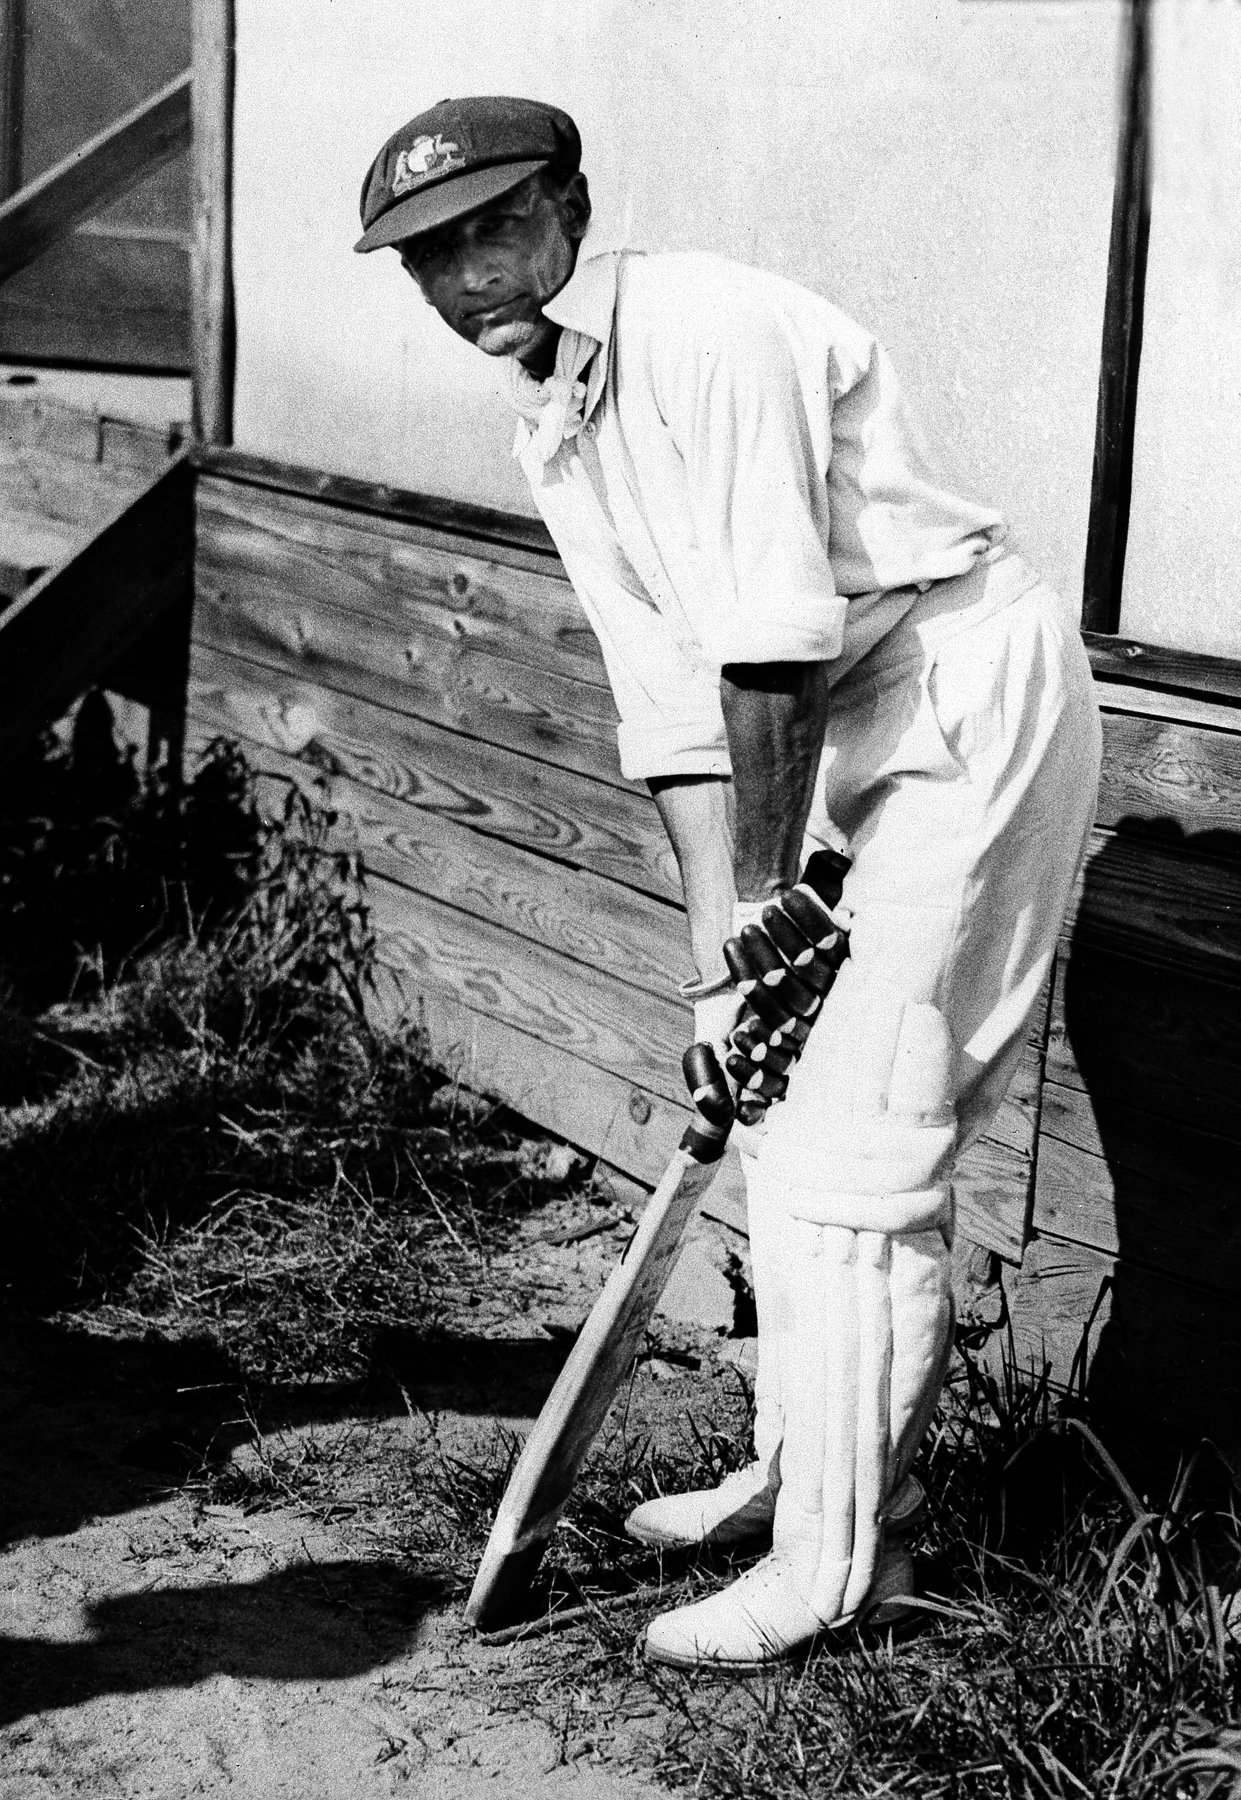 Australian cricket team member Donald Bradman in July 1932.